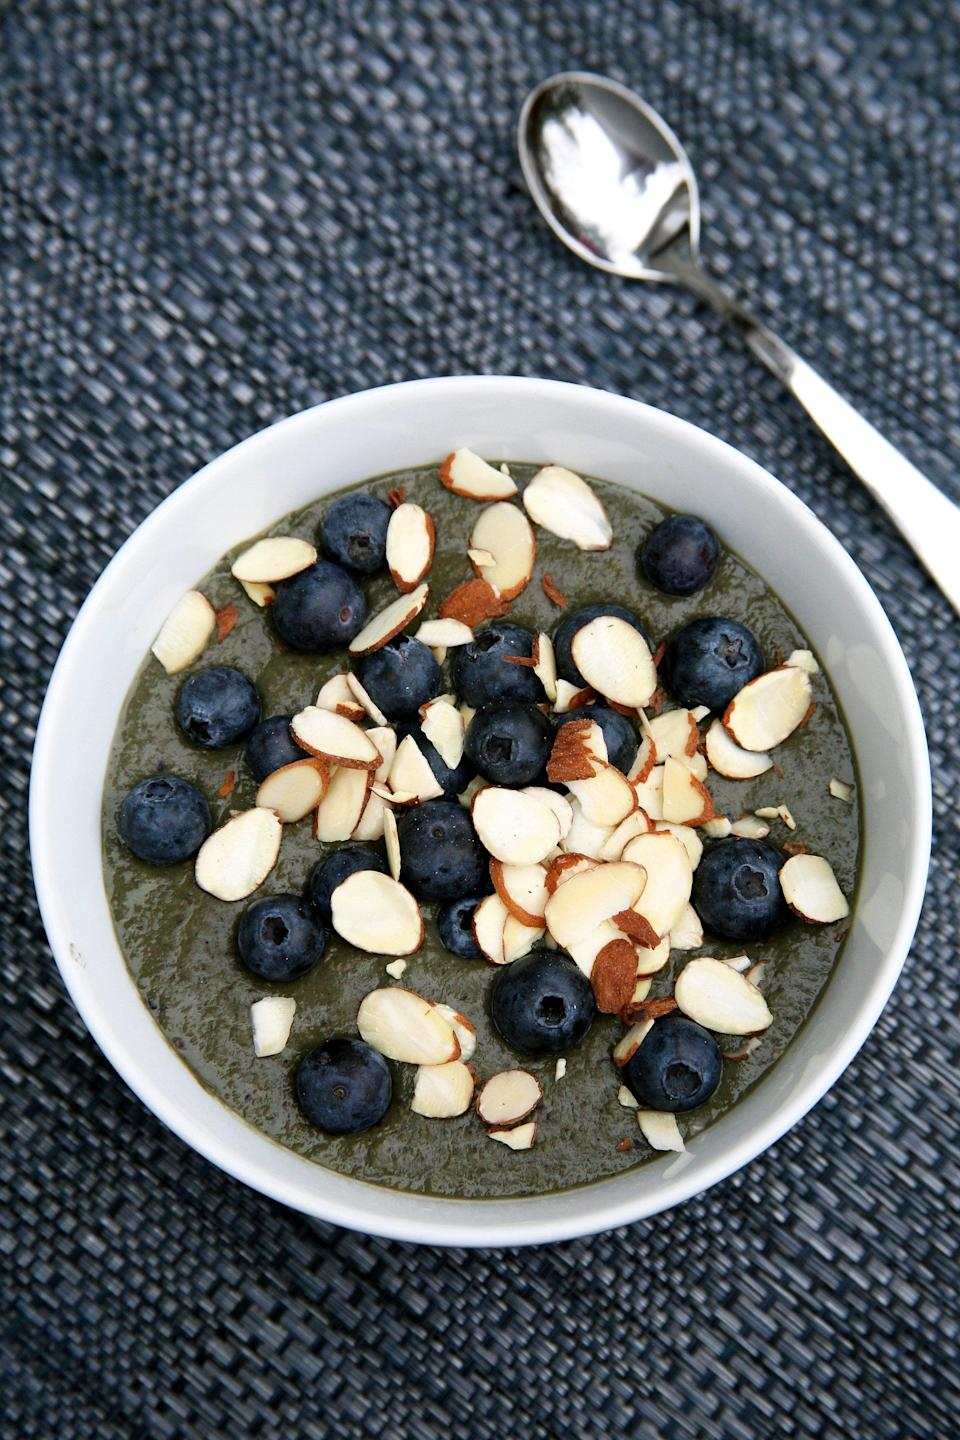 """<p>Make a bowl of smoatmeal! It's one part smoothie and one part oatmeal, which equals all parts awesome. </p> <p><strong>Calories:</strong> 369<br> <strong>Protein:</strong> 18.2 grams</p> <p><strong>Get the recipe:</strong> <a href=""""https://www.popsugar.com/fitness/Best-Winter-Breakfast-Weight-Loss-39032882"""" class=""""link rapid-noclick-resp"""" rel=""""nofollow noopener"""" target=""""_blank"""" data-ylk=""""slk:smoatmeal"""">smoatmeal</a></p>"""